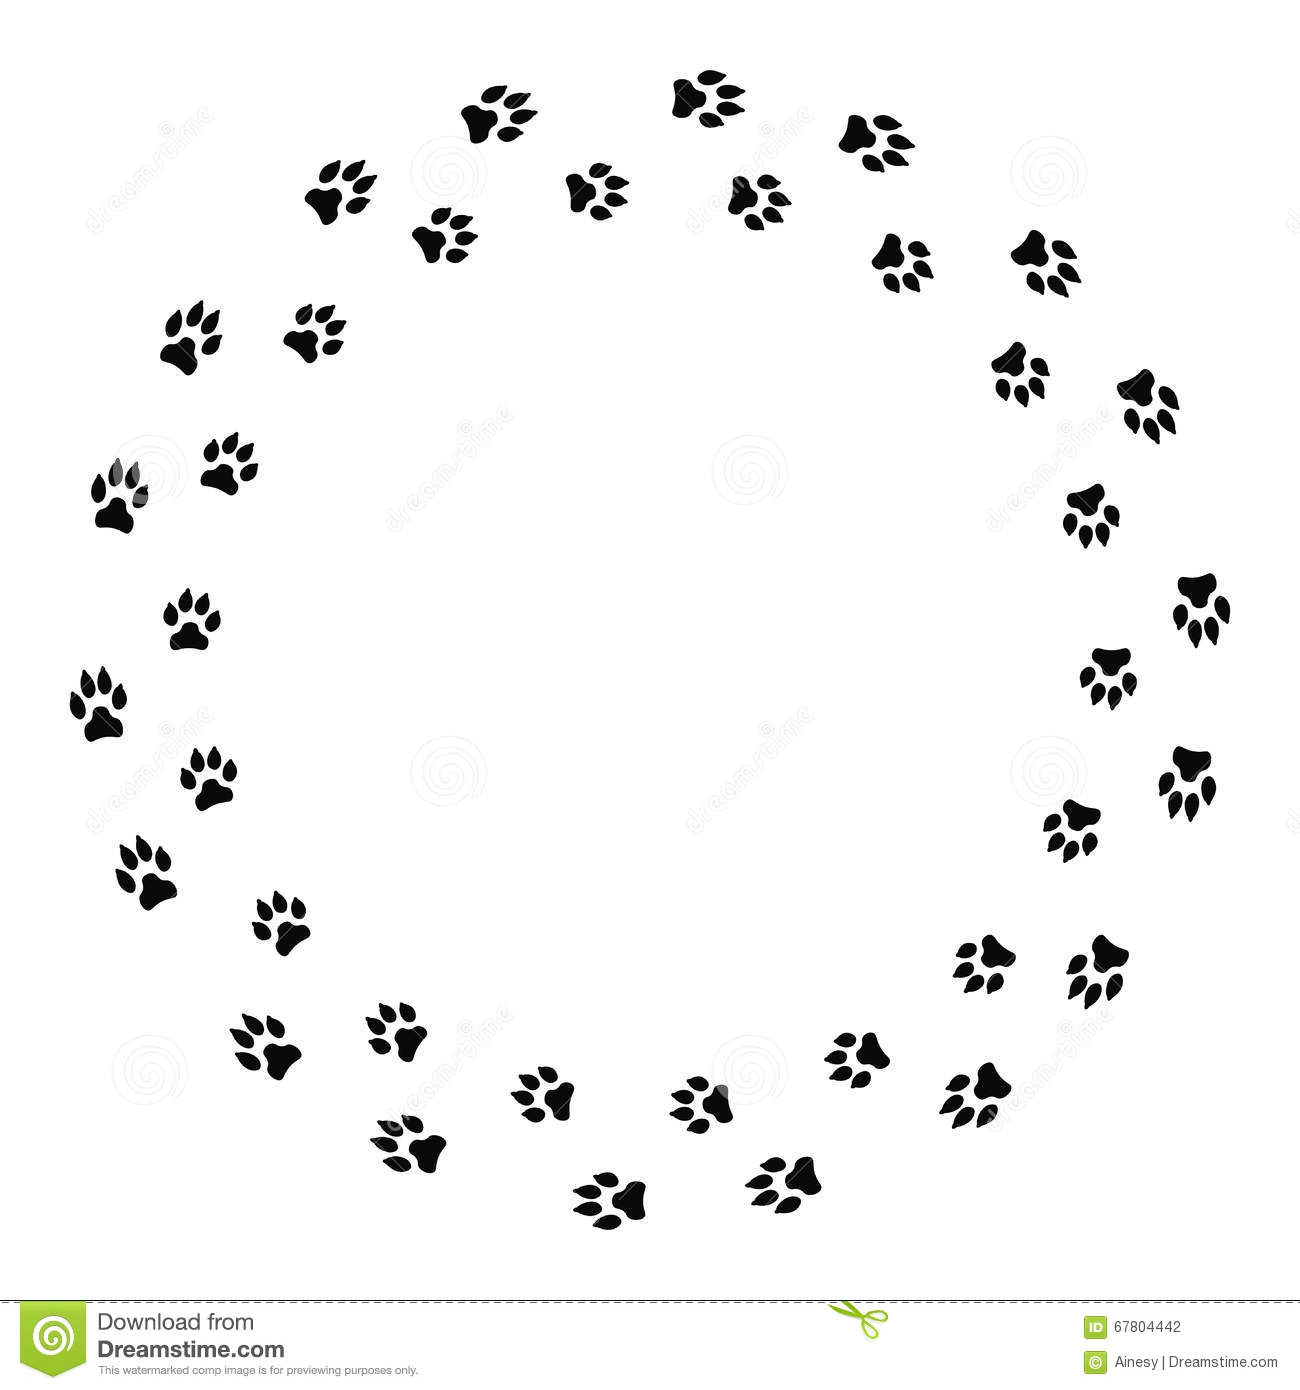 Black And White Sketched Biology And Chemistry Items 1376227 furthermore Coloring Doodle Dogs in addition Anatomia Humana E Animal furthermore 183662491031779382 furthermore Black And White Big Rig Truck 1 1068523. on 8 dogs illustration